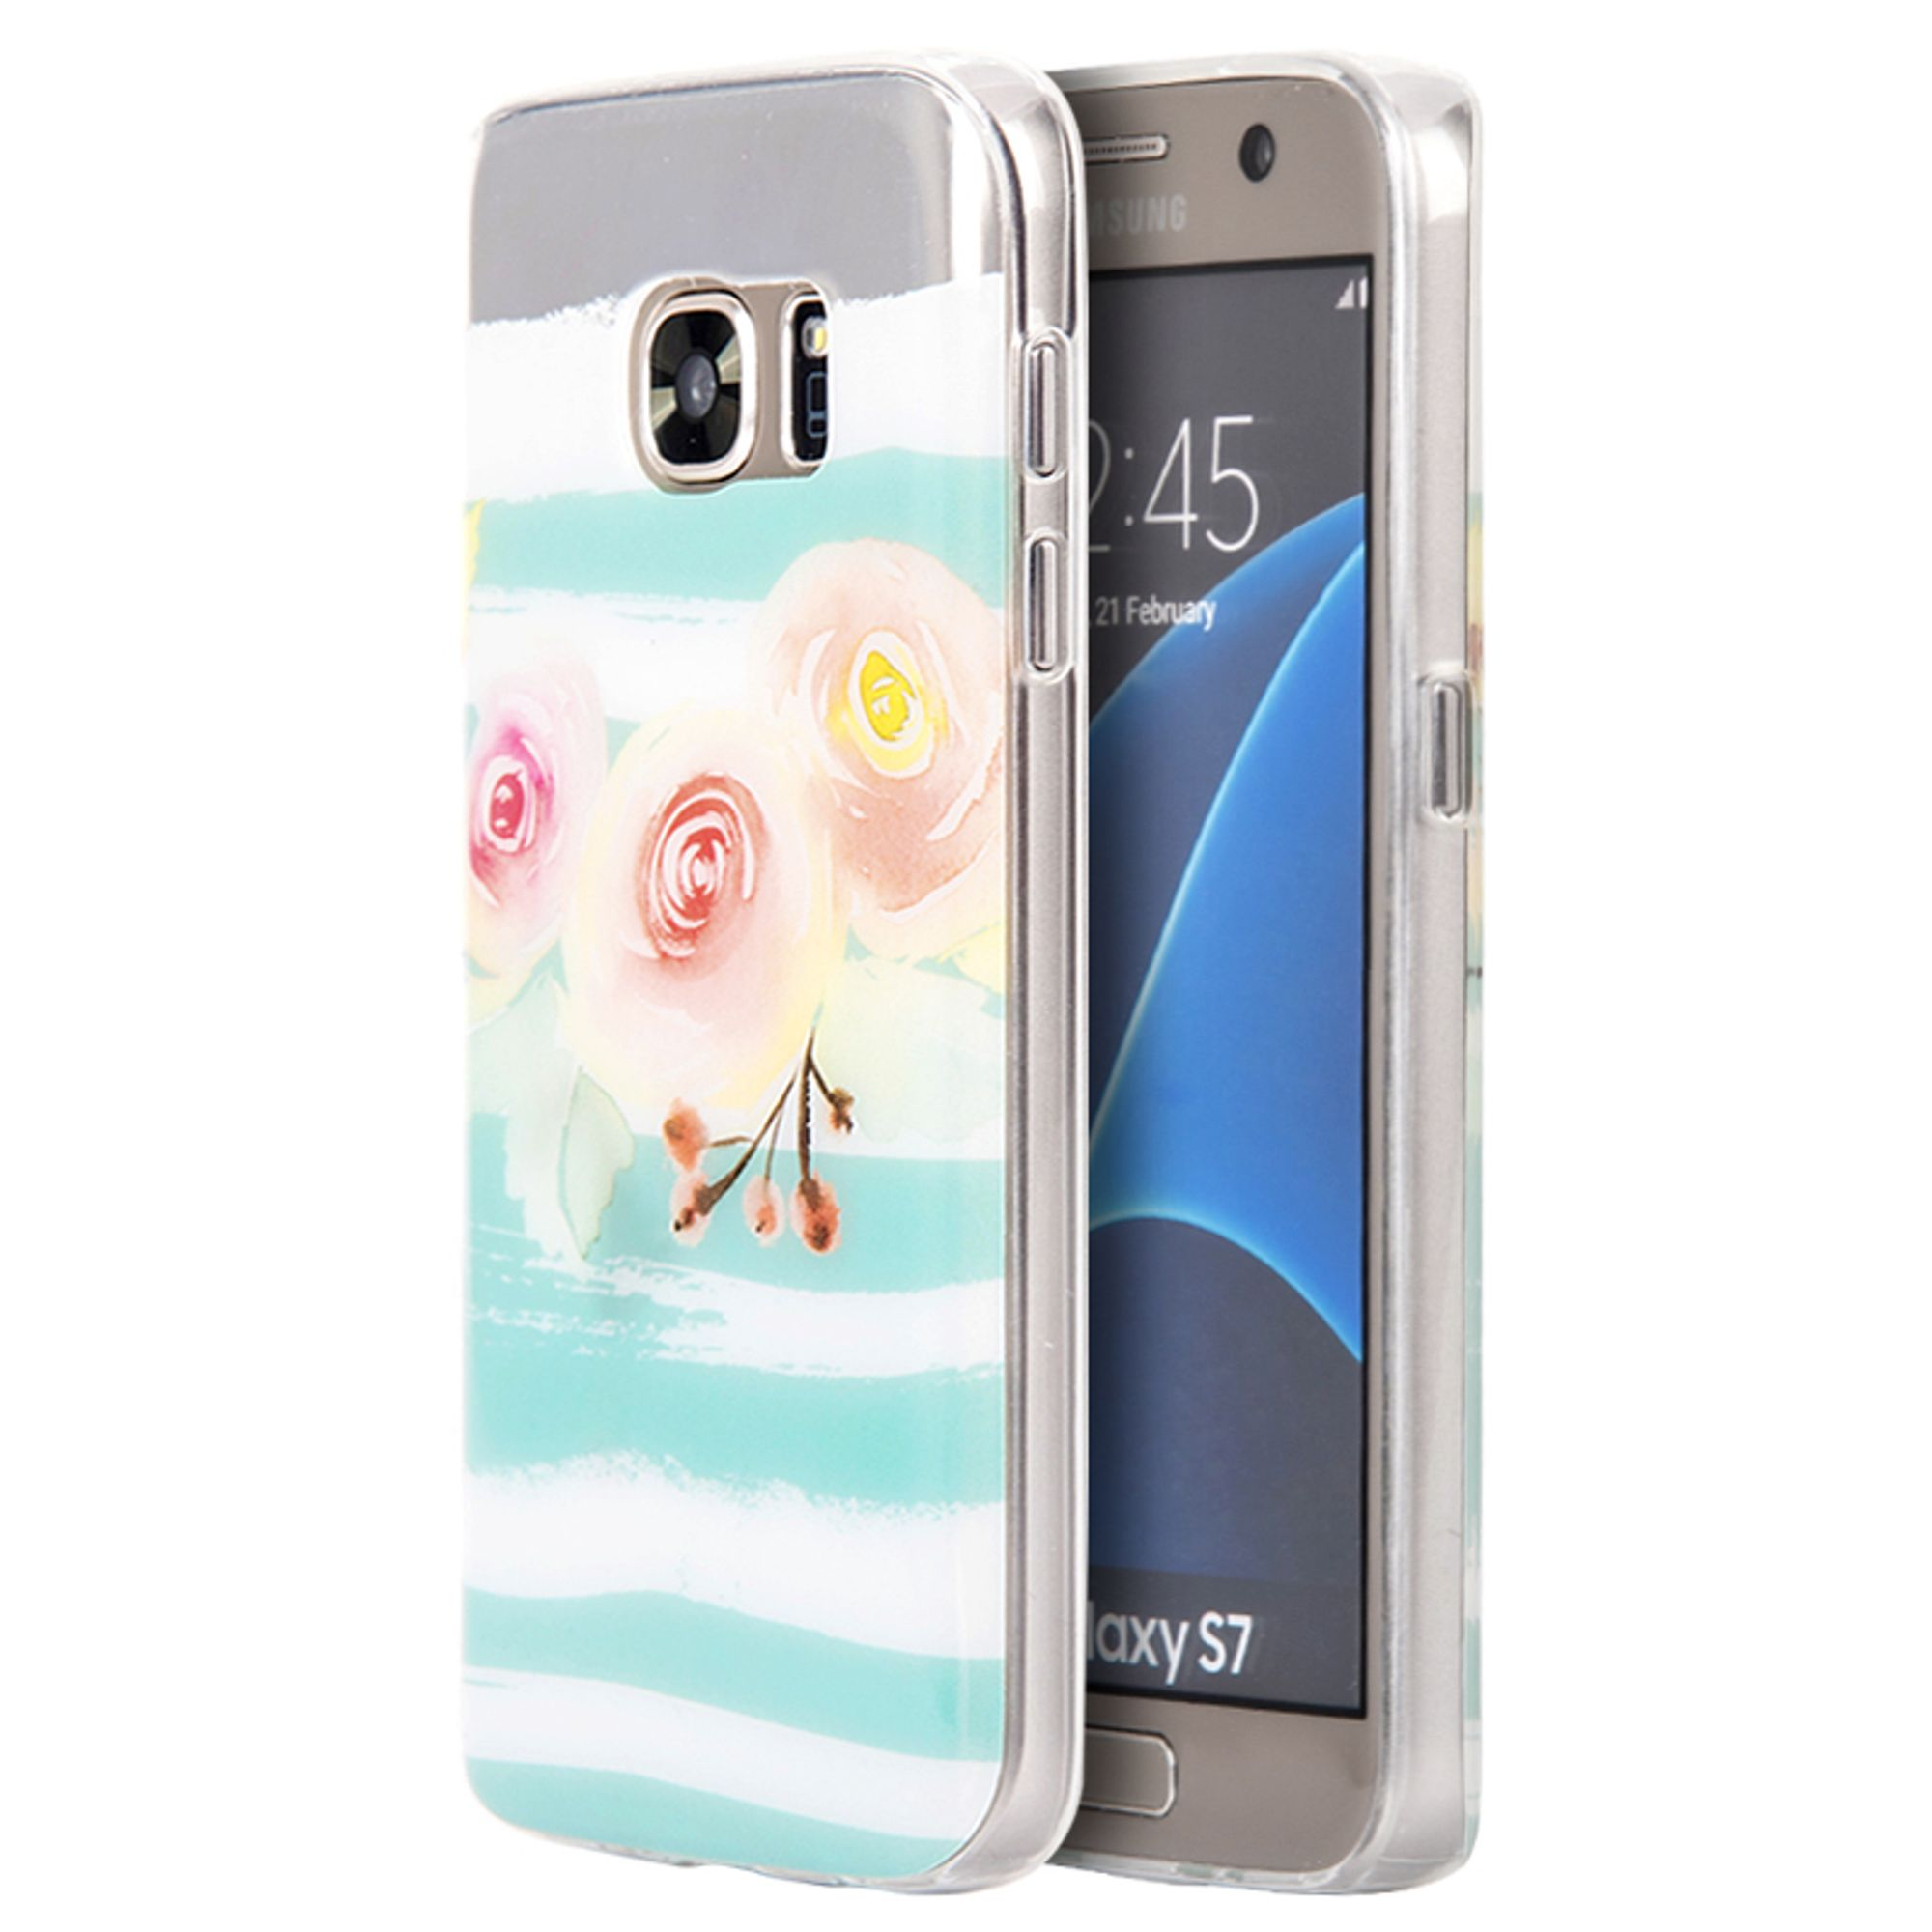 Insten Peach Blossom TPU Water Color IMD Rubber Skin Shell Case For Samsung Galaxy S7 - Green/Orange